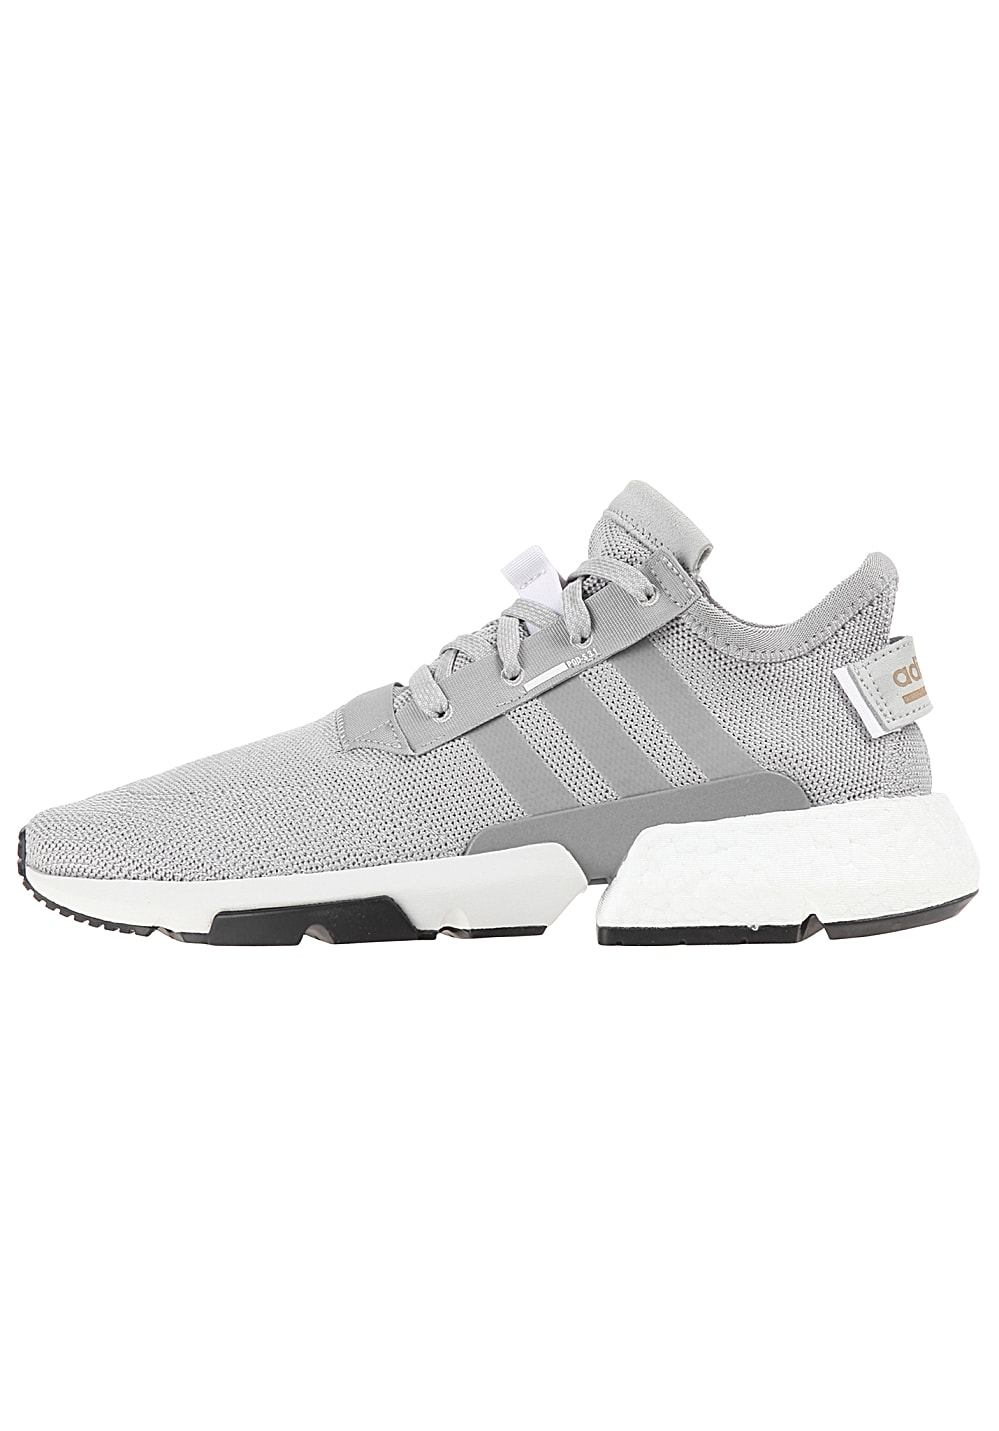 790b227e7a8d1 ADIDAS ORIGINALS Pod-S3.1 - Sneakers for Men - Grey